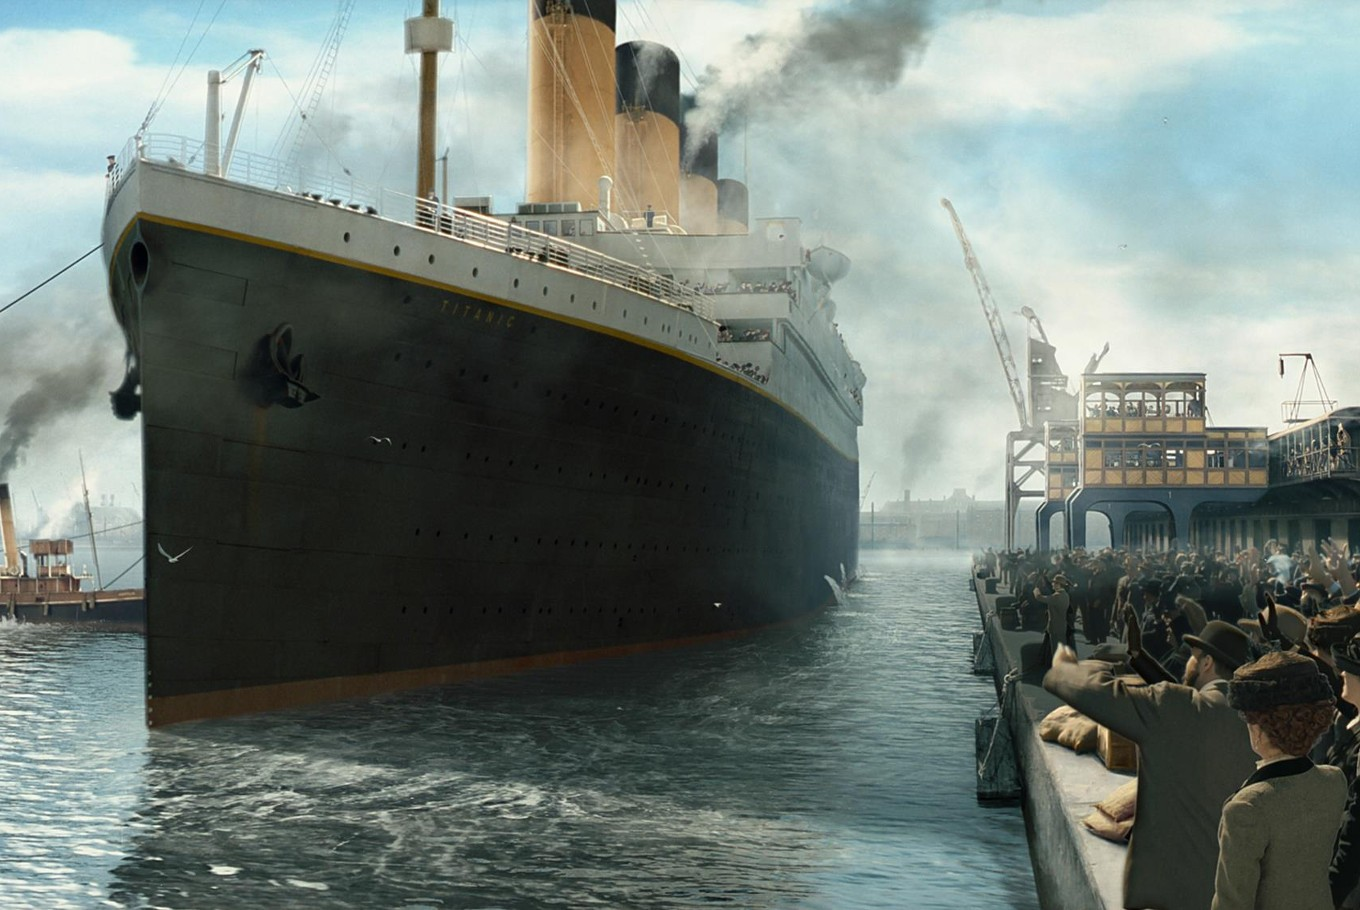 After years of delay, Titanic II is about to set sail in 2022